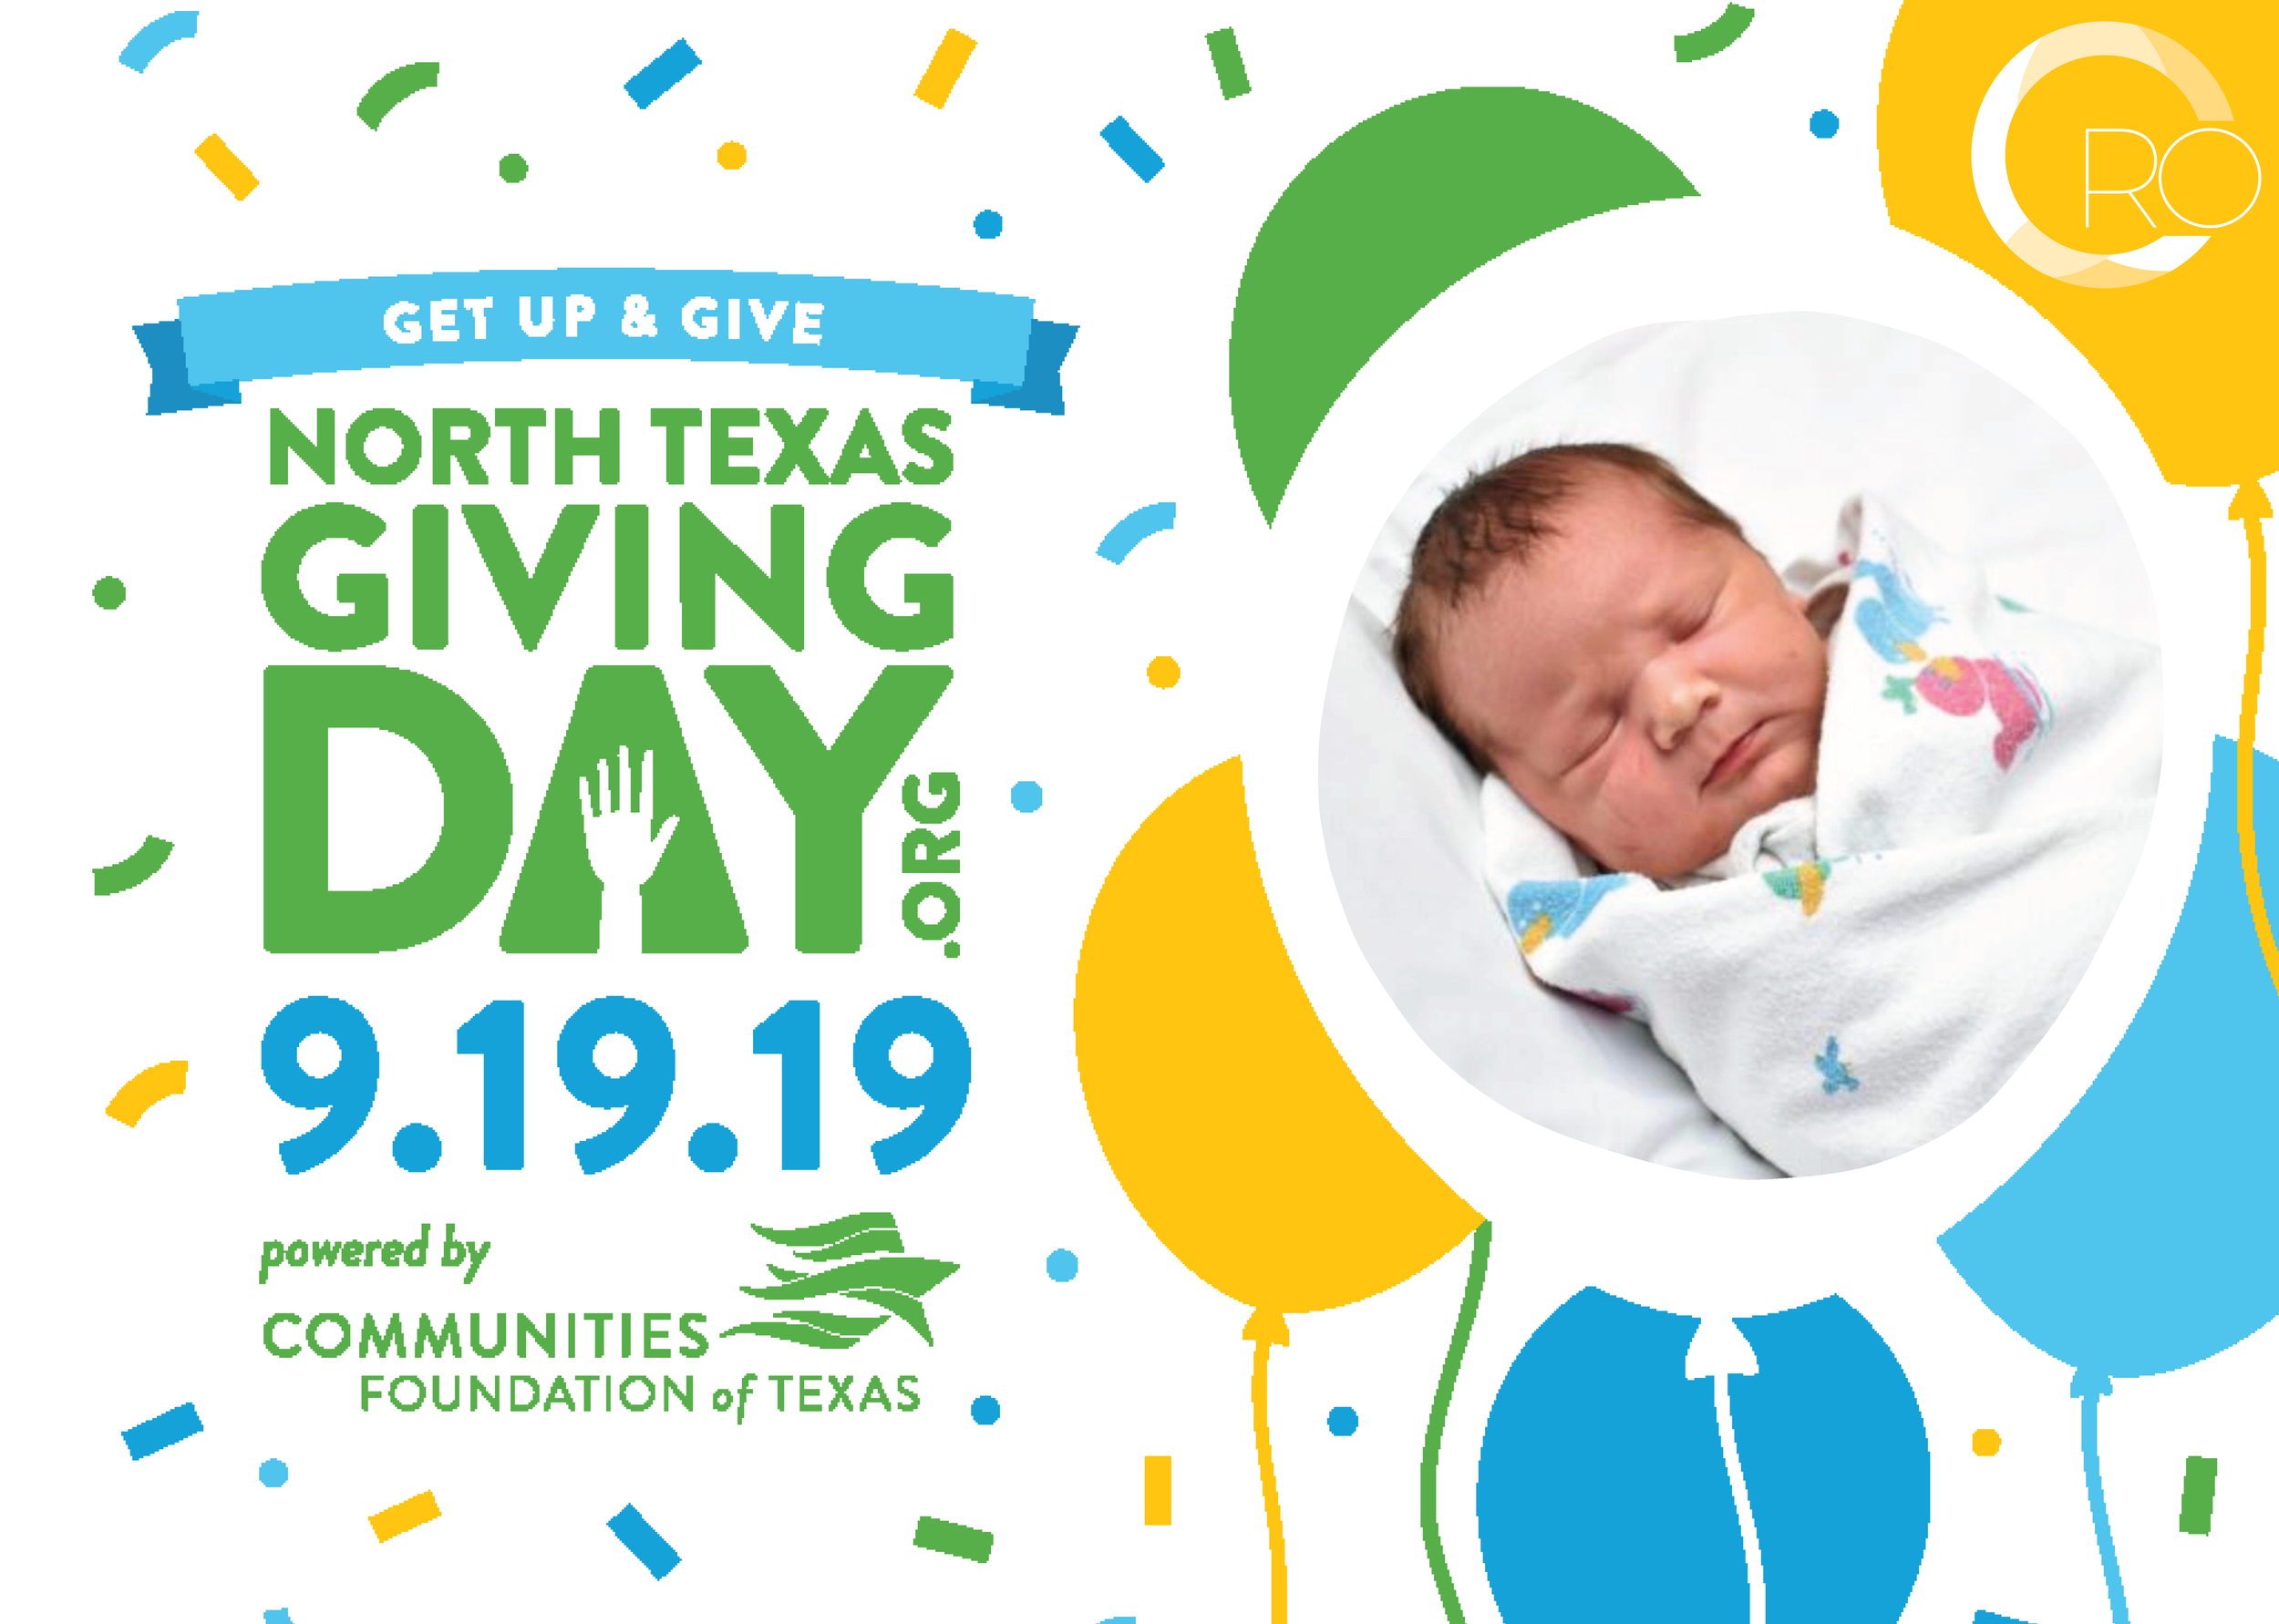 Join the party! - Real Options is excited to participate in North Texas Giving Day on Thursday September 19th! Every donation given on September 19th will be multiplied through bonus funds given by Communities Foundation of Texas. By giving to this event, you can help us reach our goal of raising $20,000.